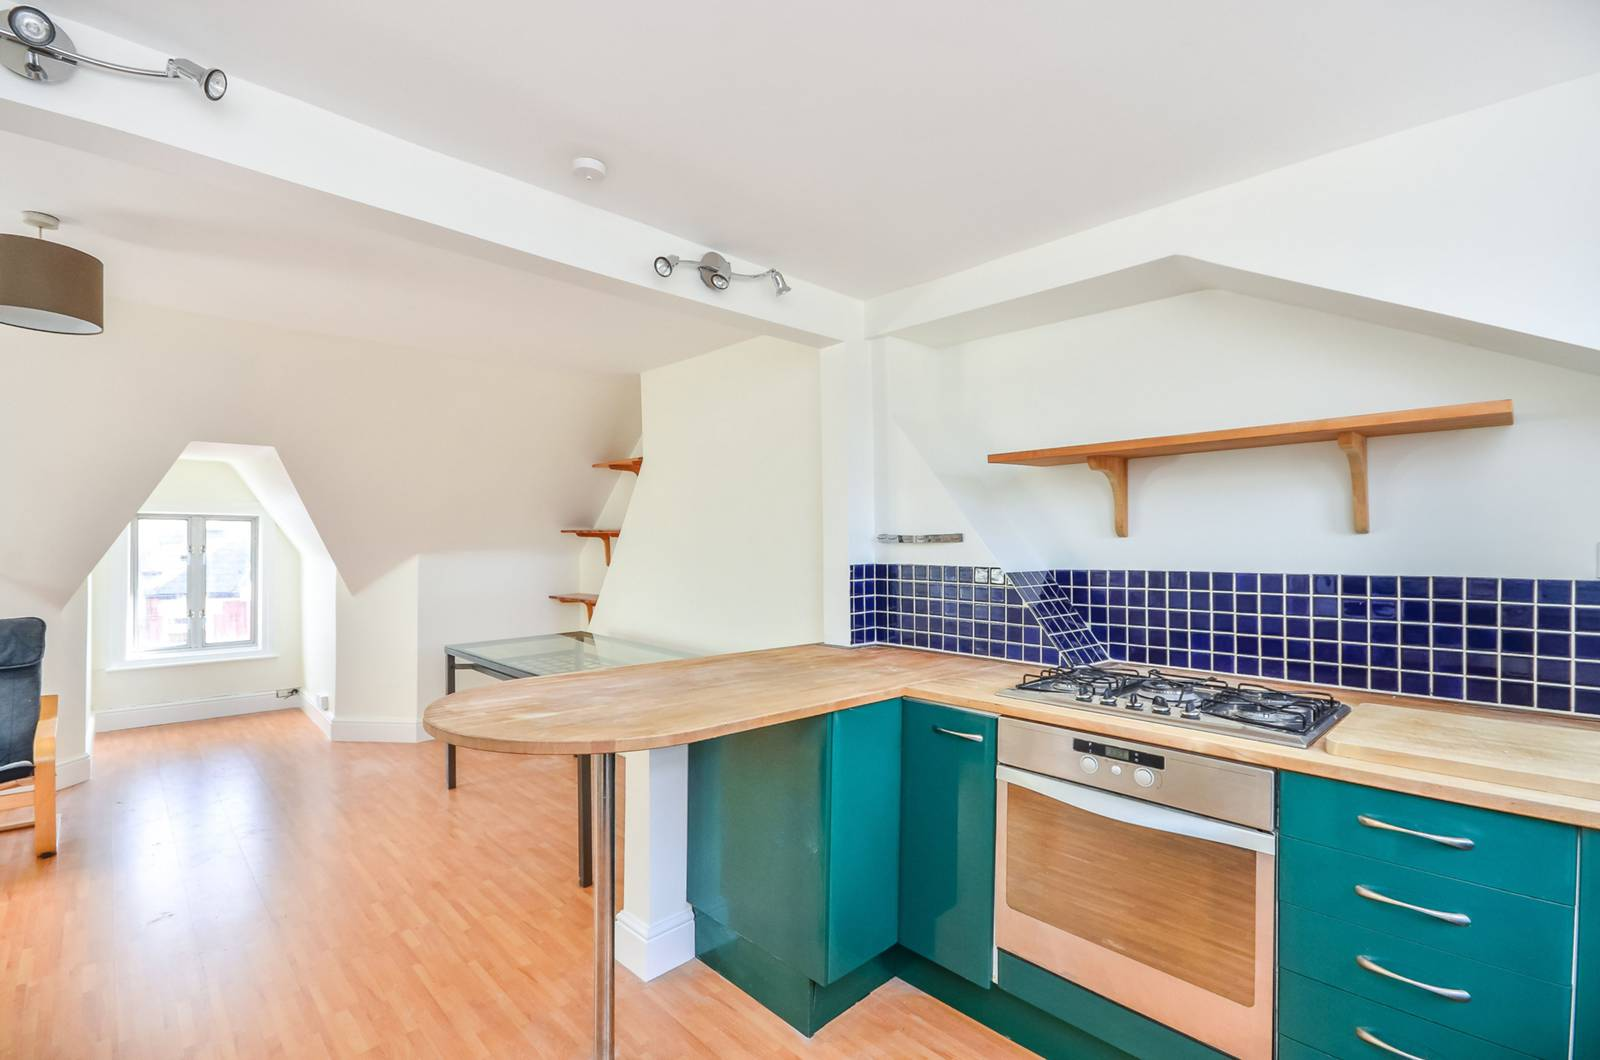 1 Bedroom Flat To Rent In Glengarry Road East Dulwich